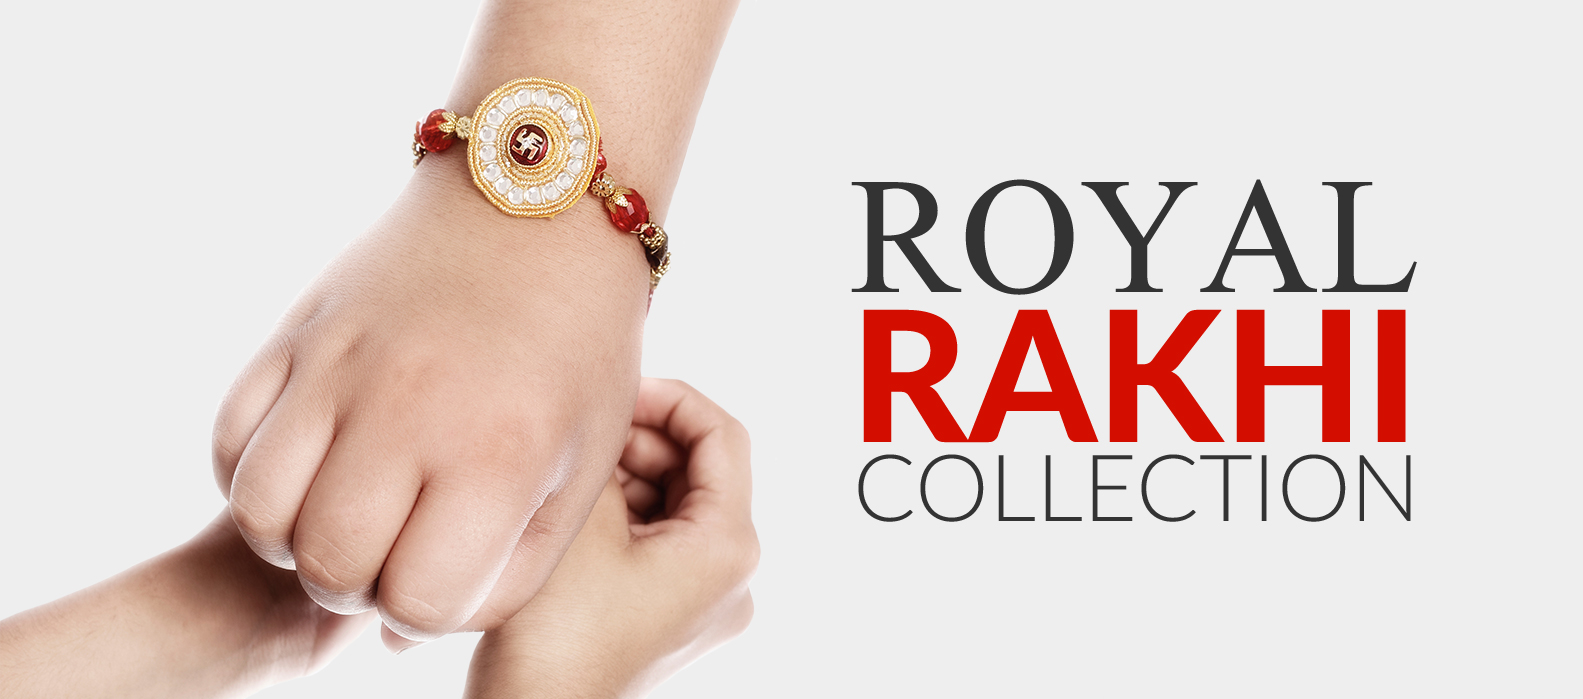 Royal-Rakhi-Collection_1583x699